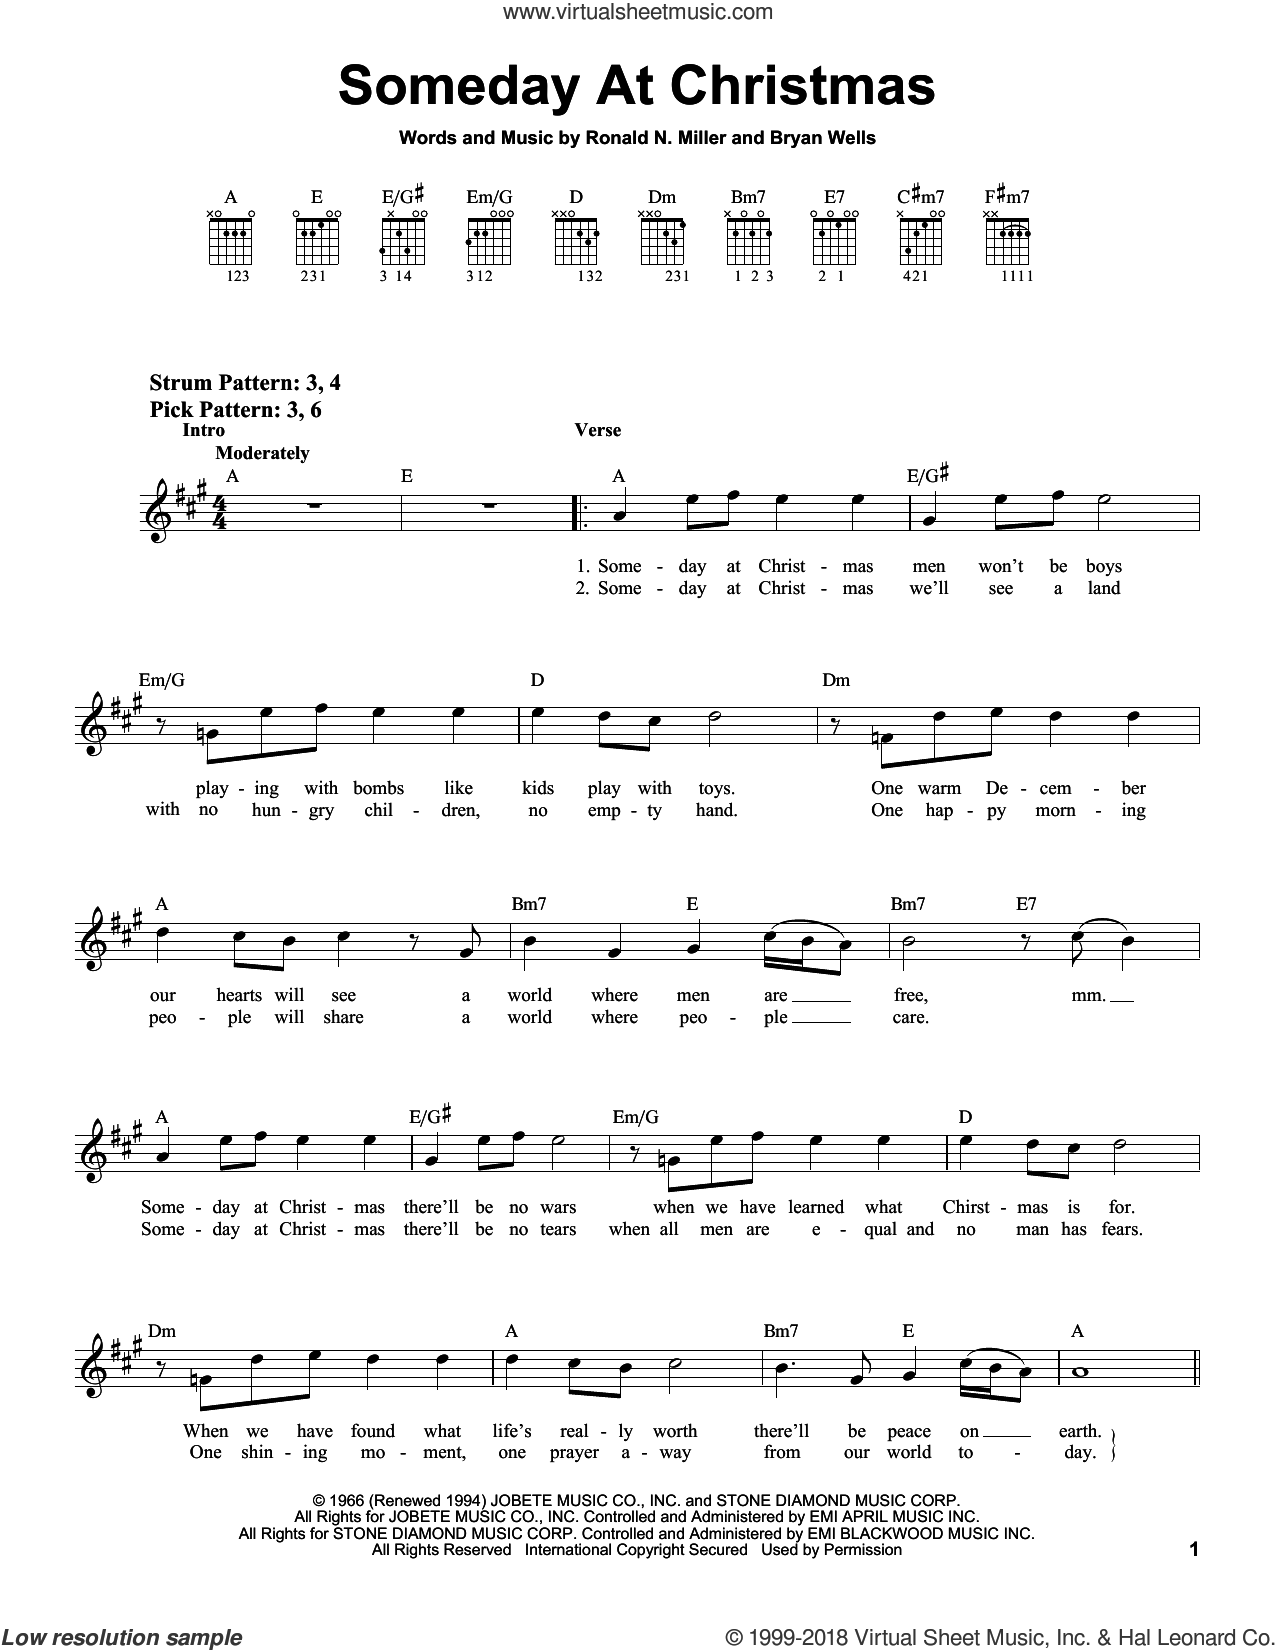 Someday At Christmas sheet music for guitar solo (chords) by Bryan Wells